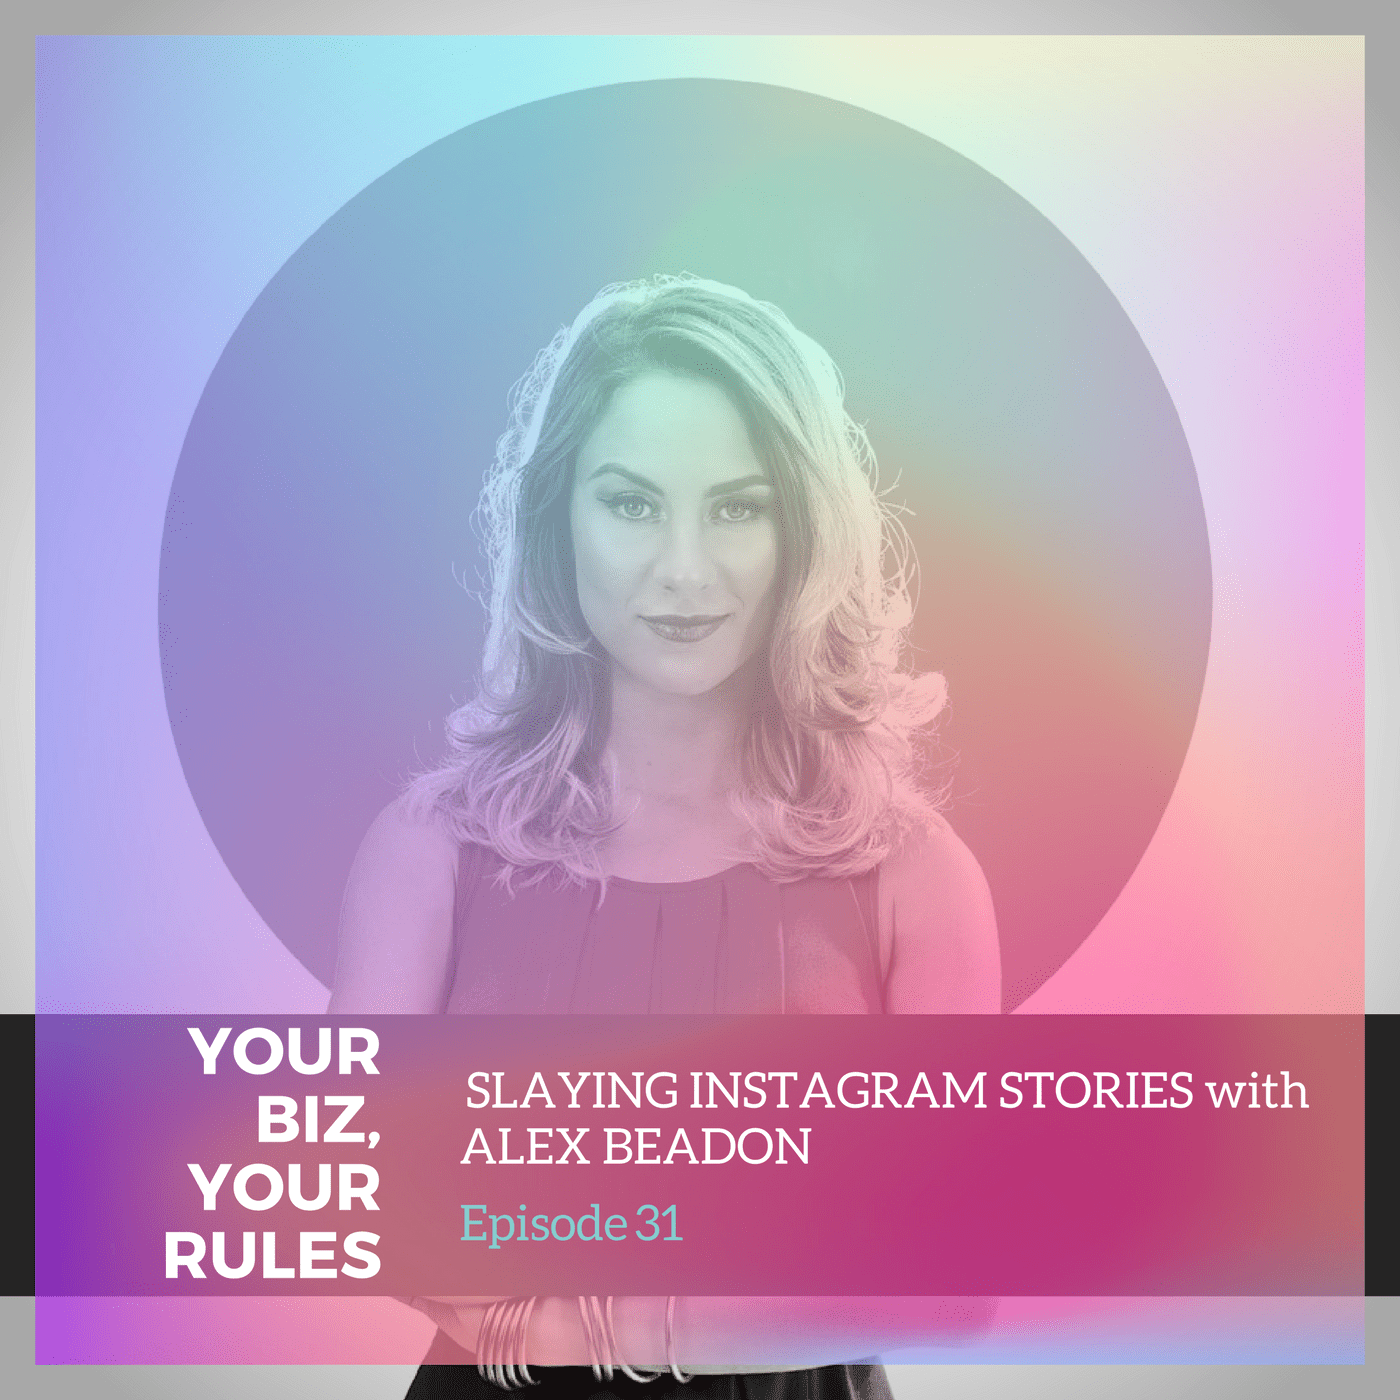 Ep 31 Slaying Instagram Stories with Alex Beadon